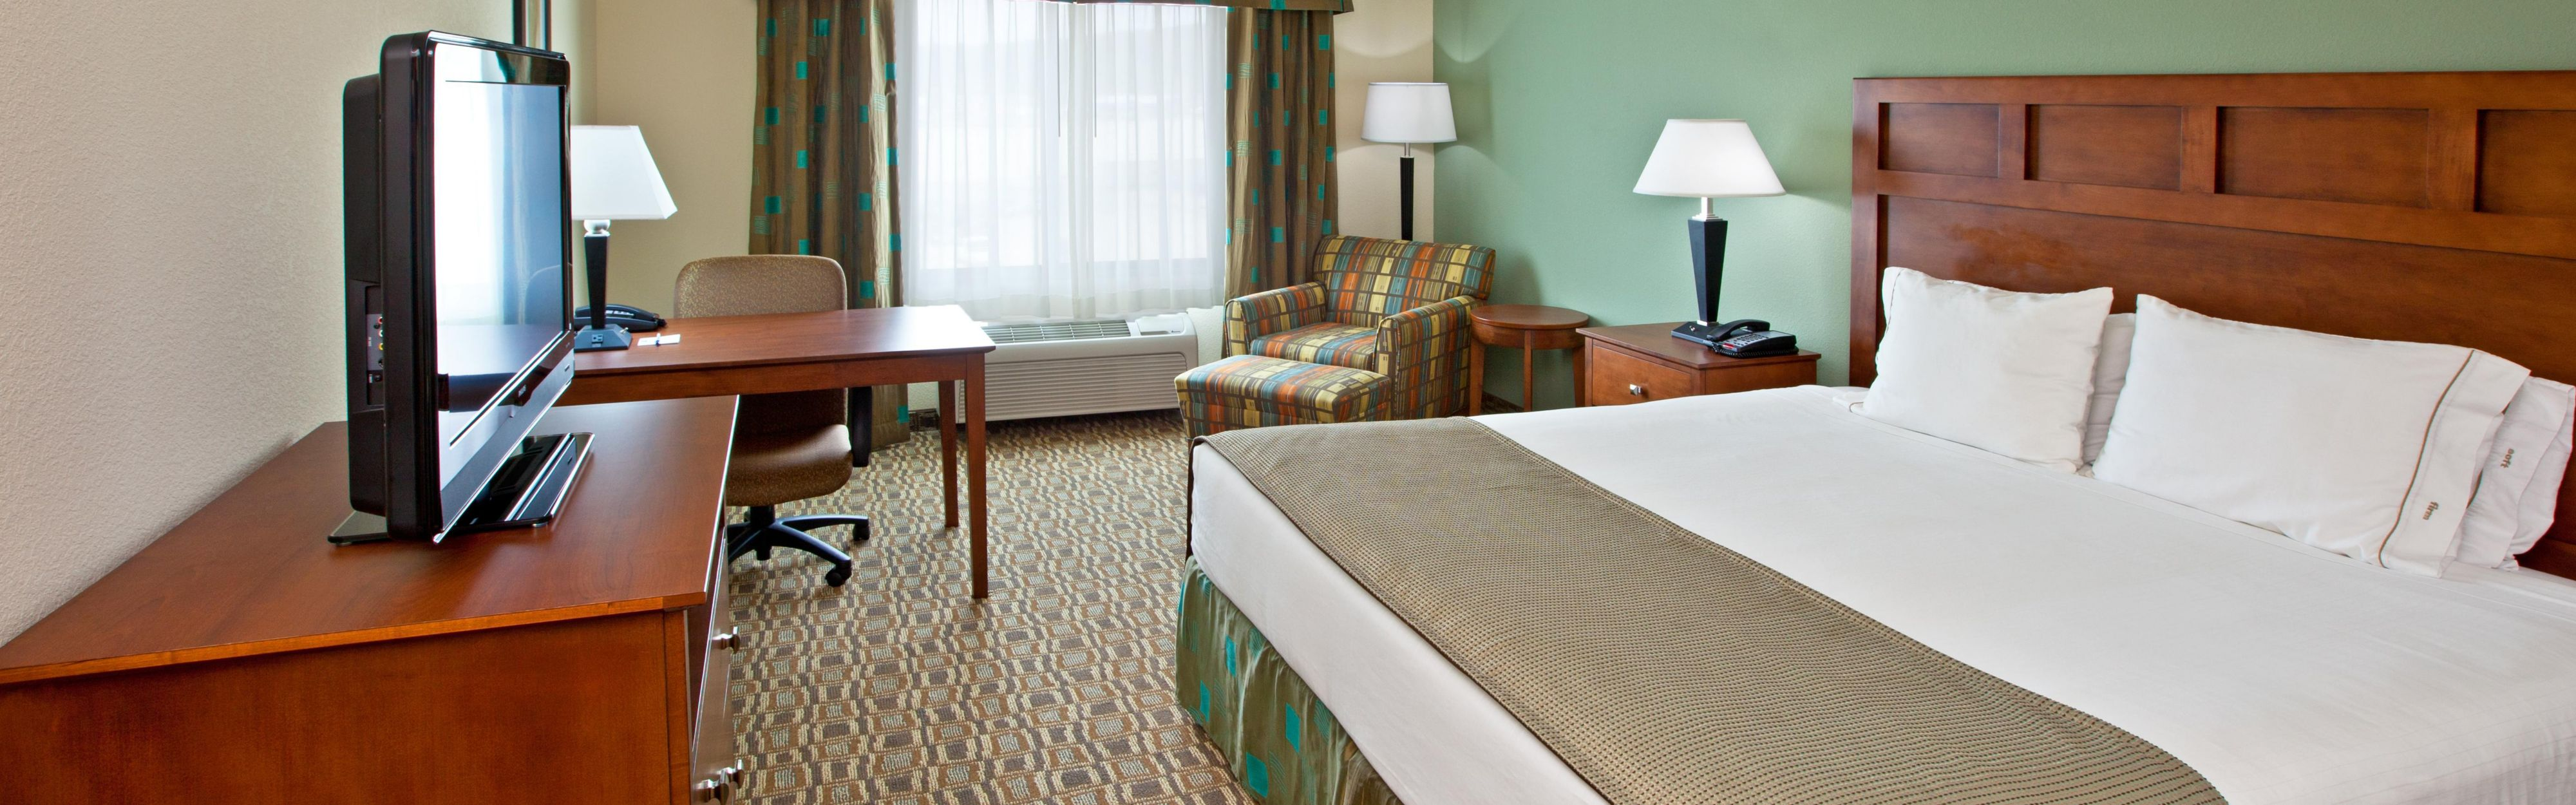 Holiday Inn Express & Suites Ripley image 1